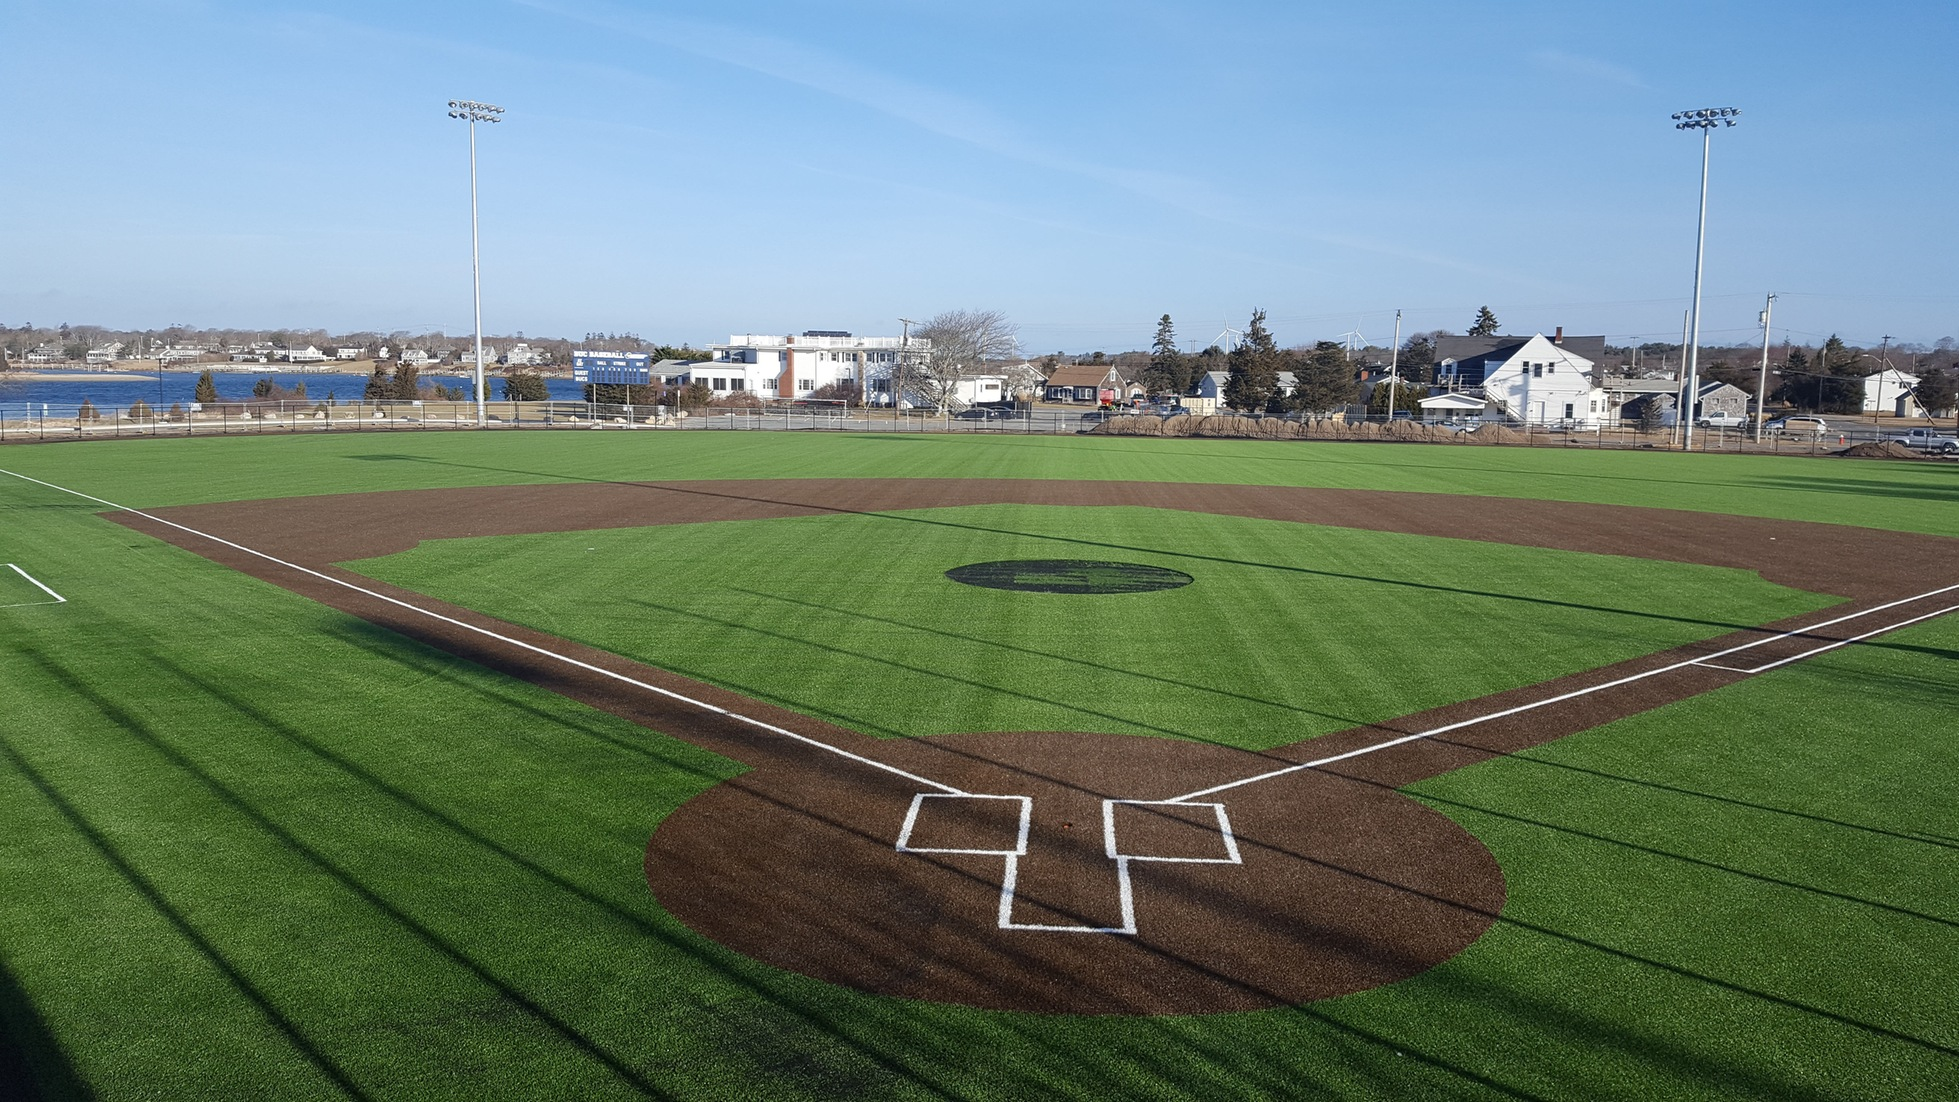 Baseball Field Grand Opening - 14 March 2018